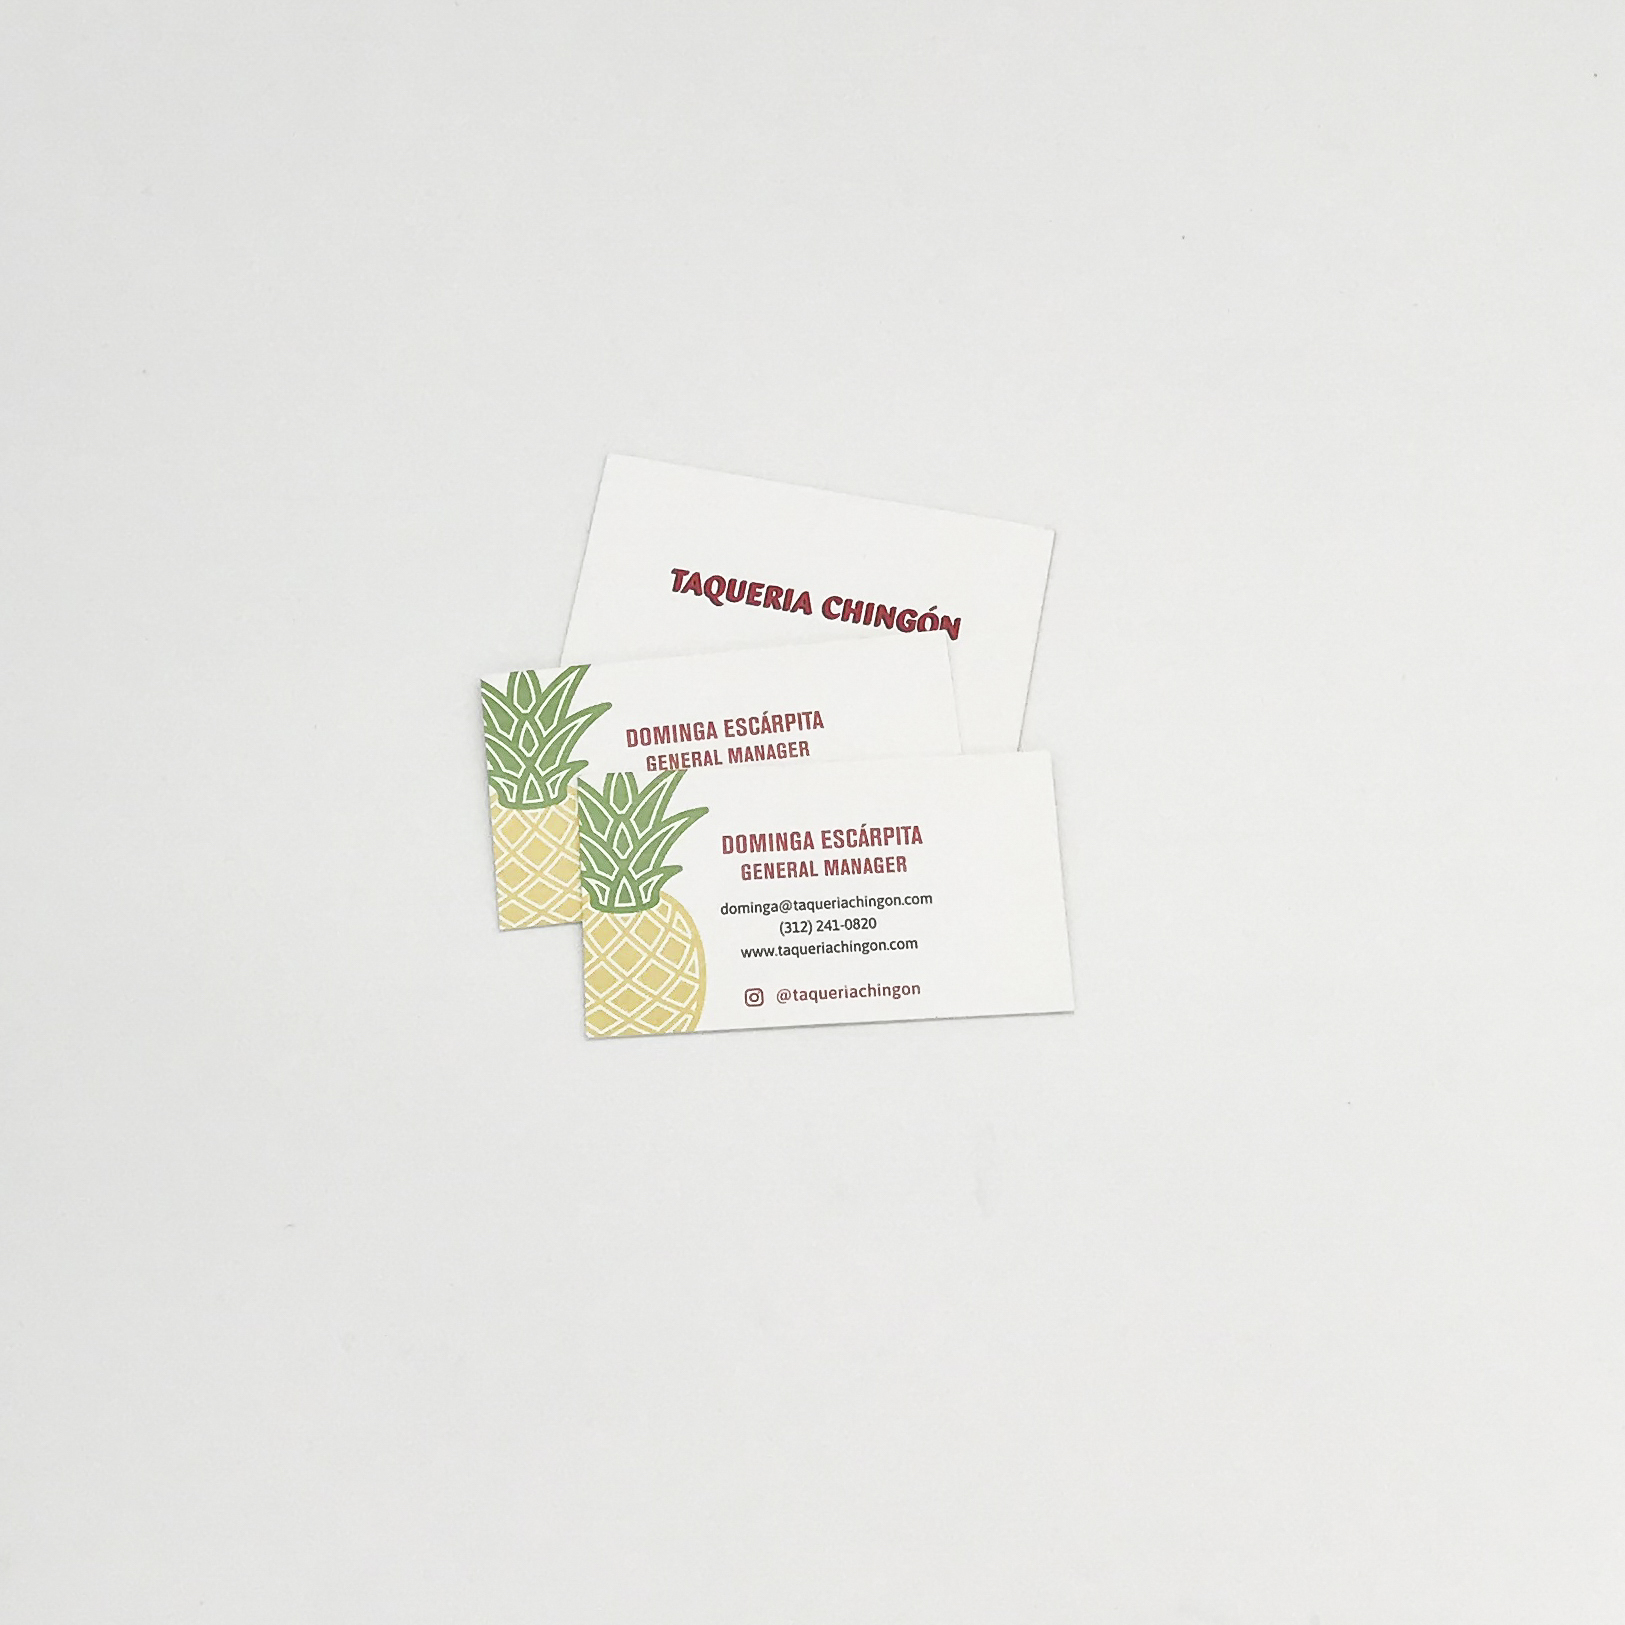 Business cards featuring a pineapple